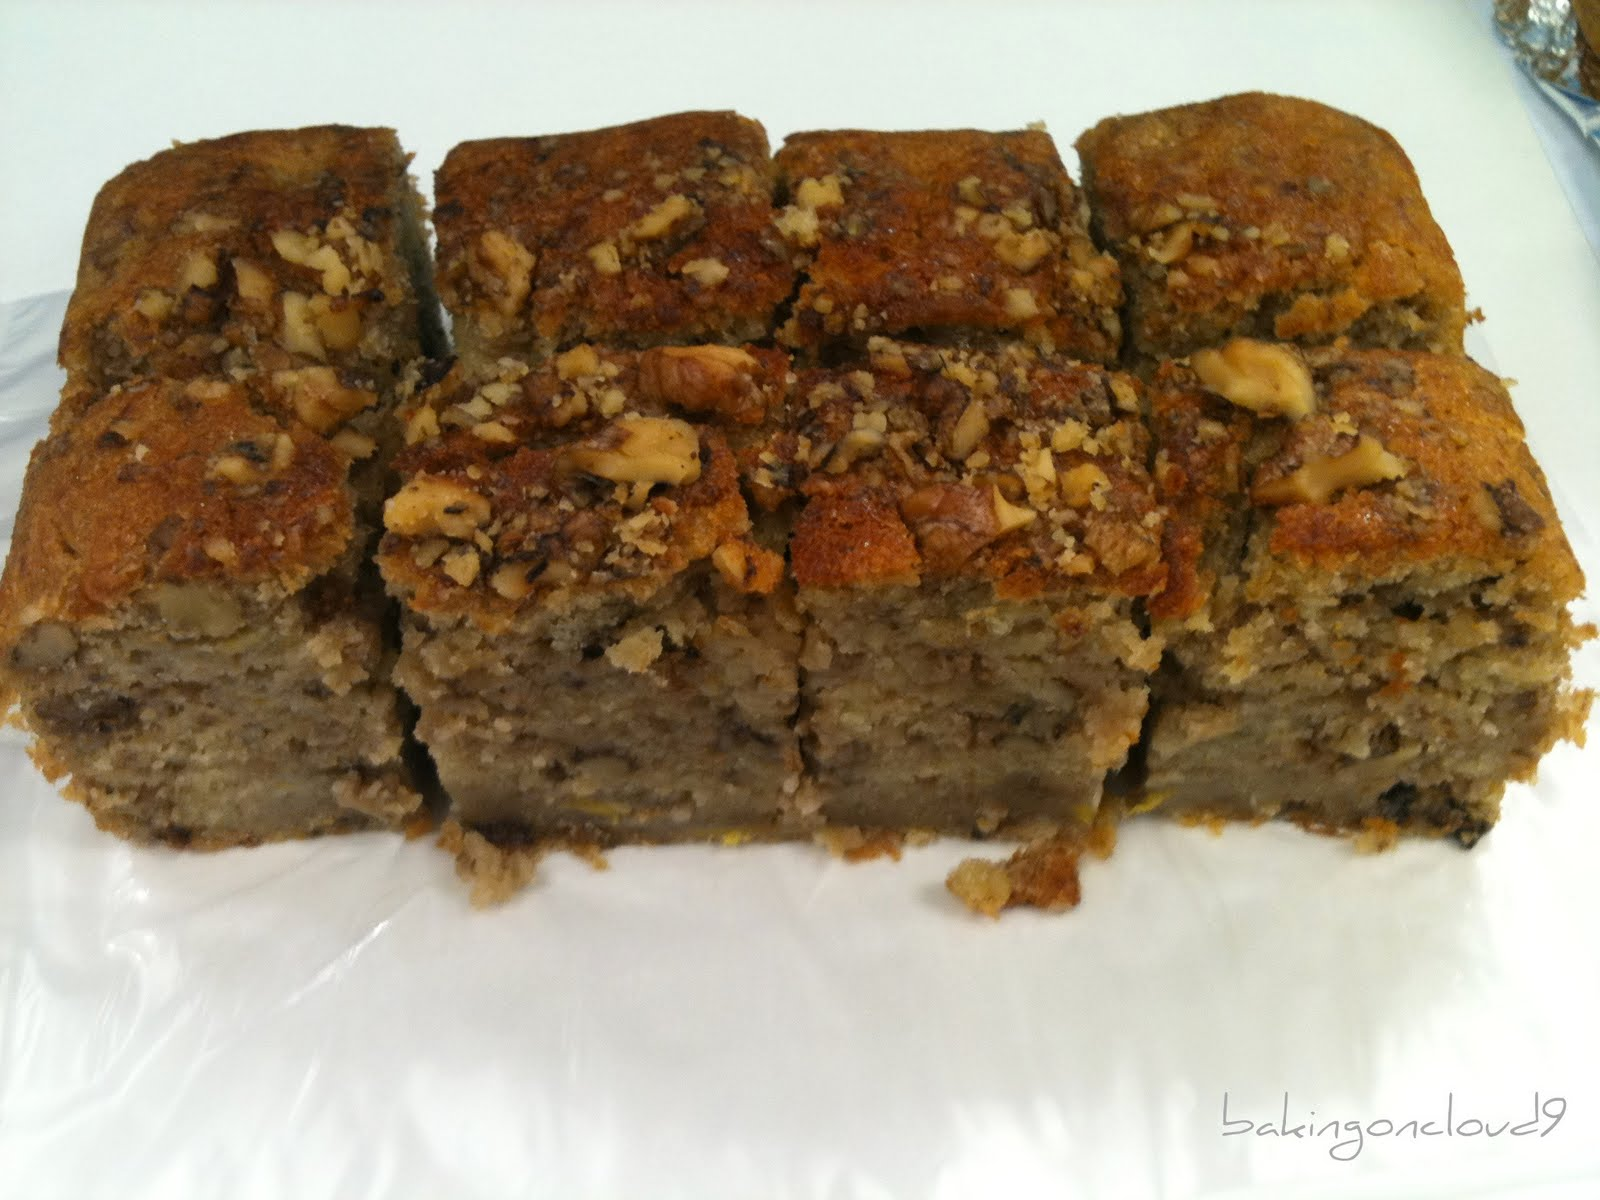 Banana raisin nut cake recipe